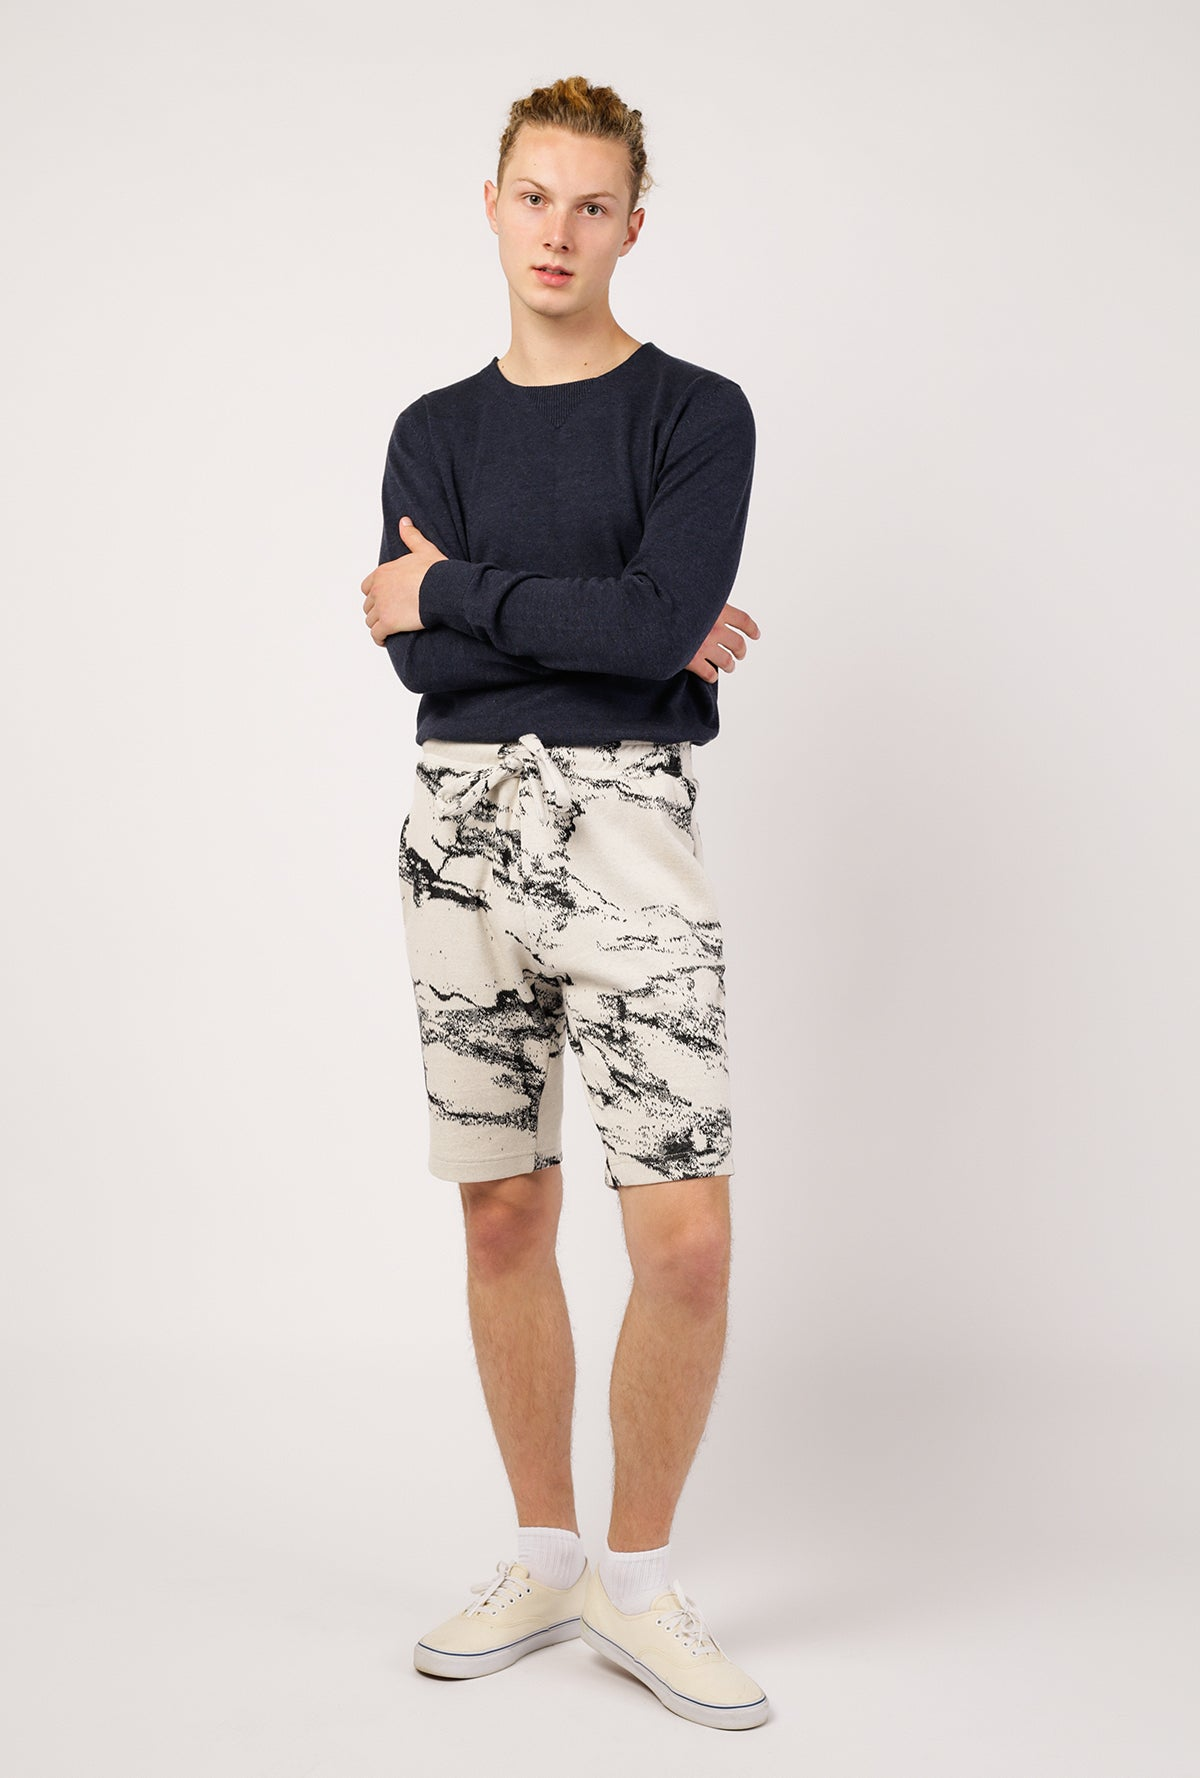 Graham Marble Knit Short